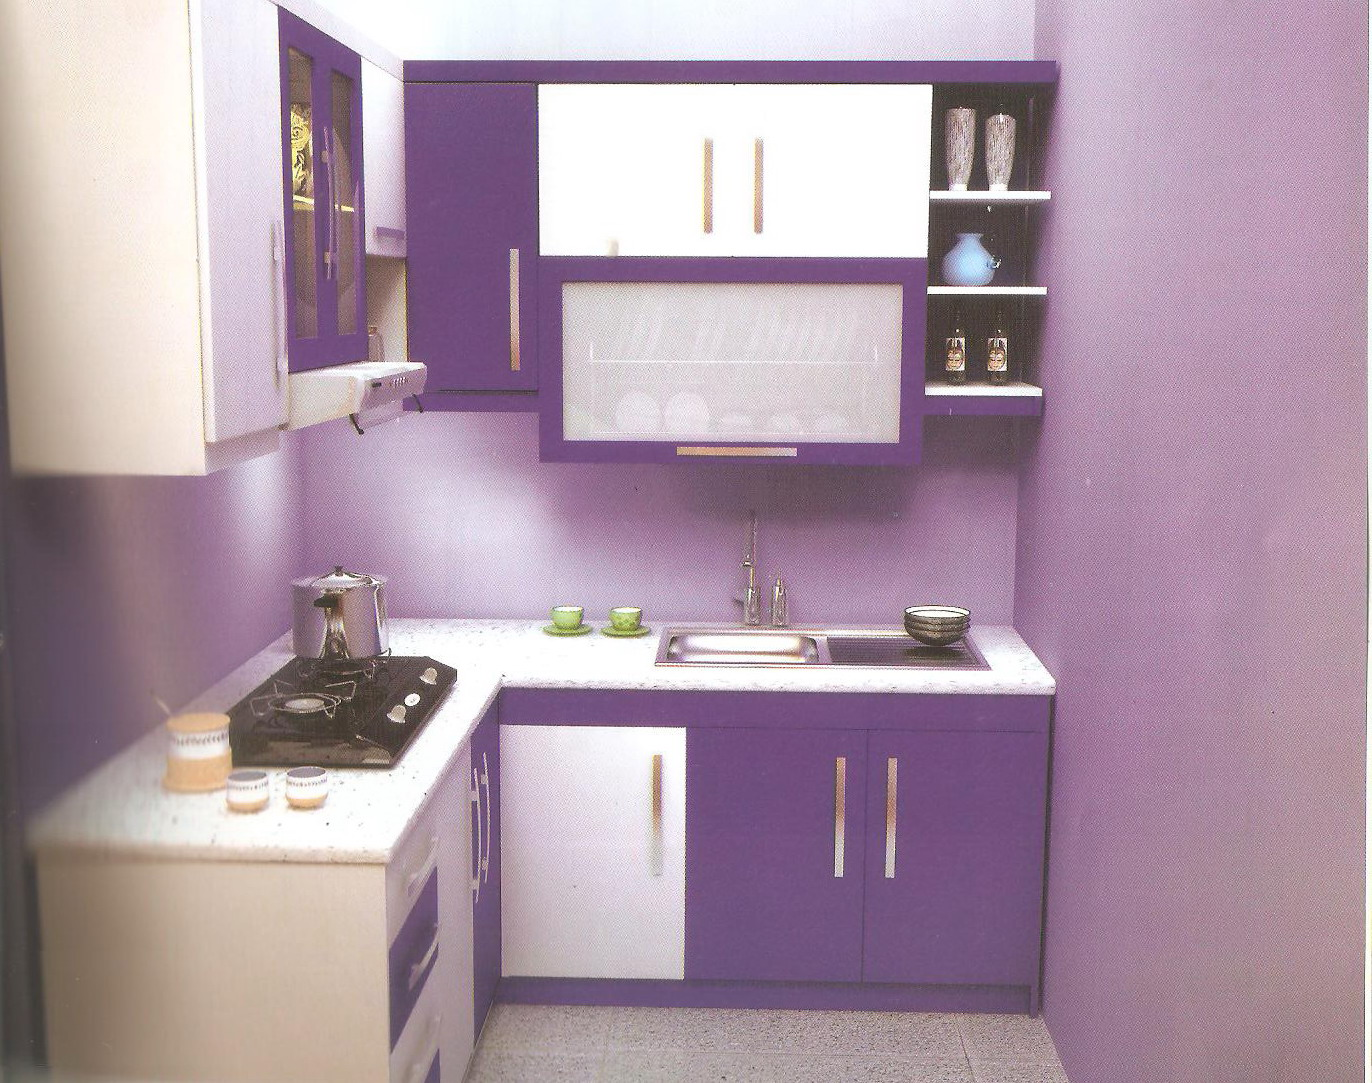 kitchen-simple-5